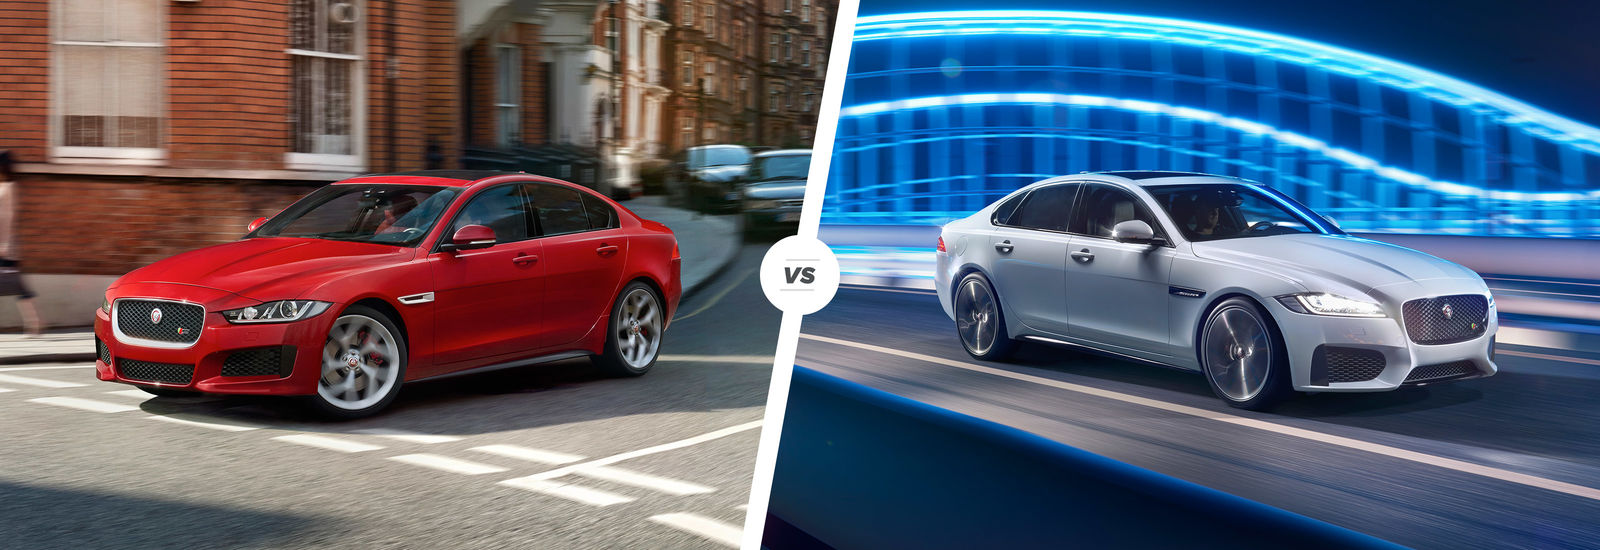 Jaguar Xe Vs Xf Great British Saloon Brawl Carwow